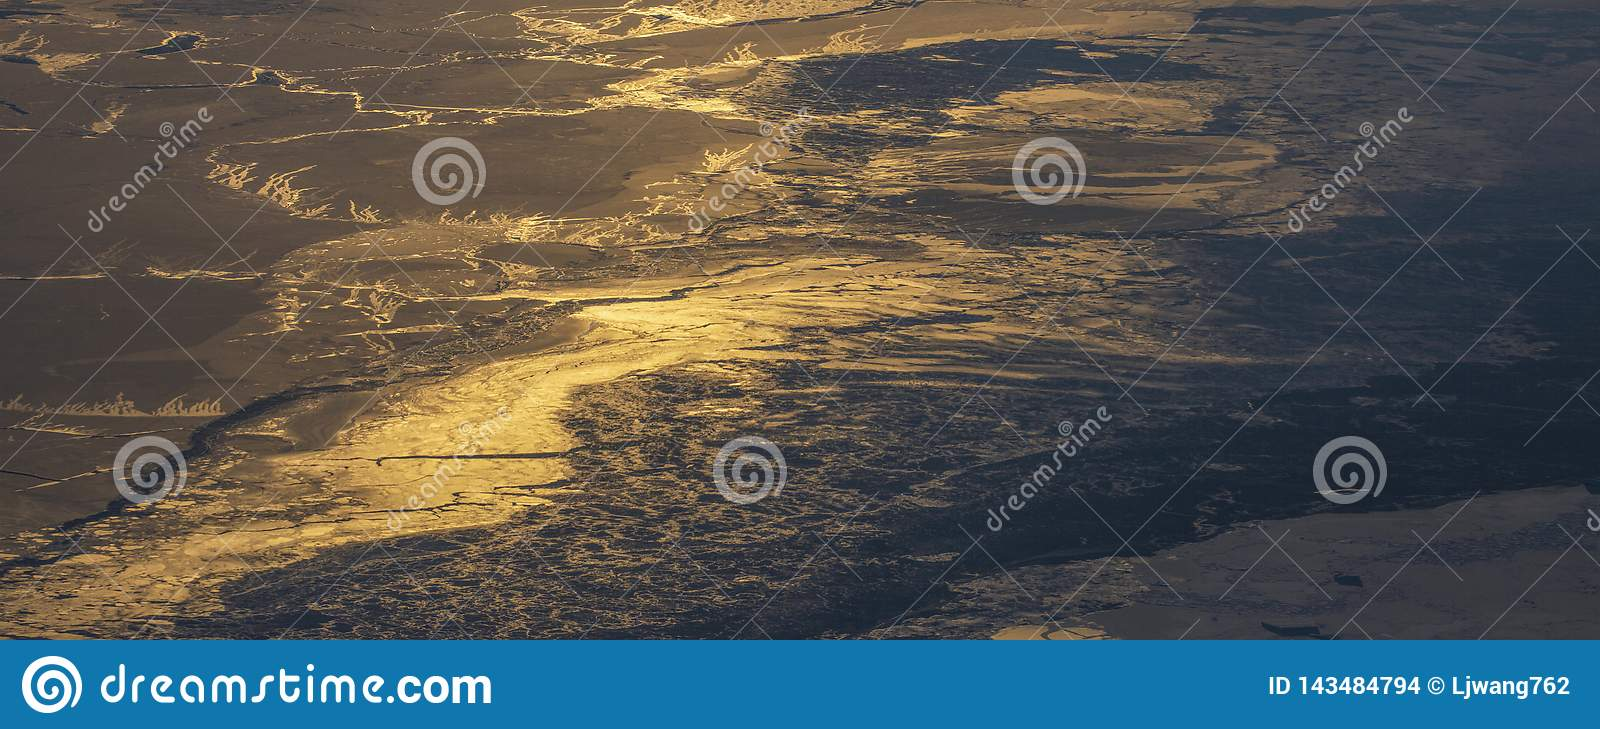 24Take an aerial view of the ice and sunrise over the bering strait.(1)